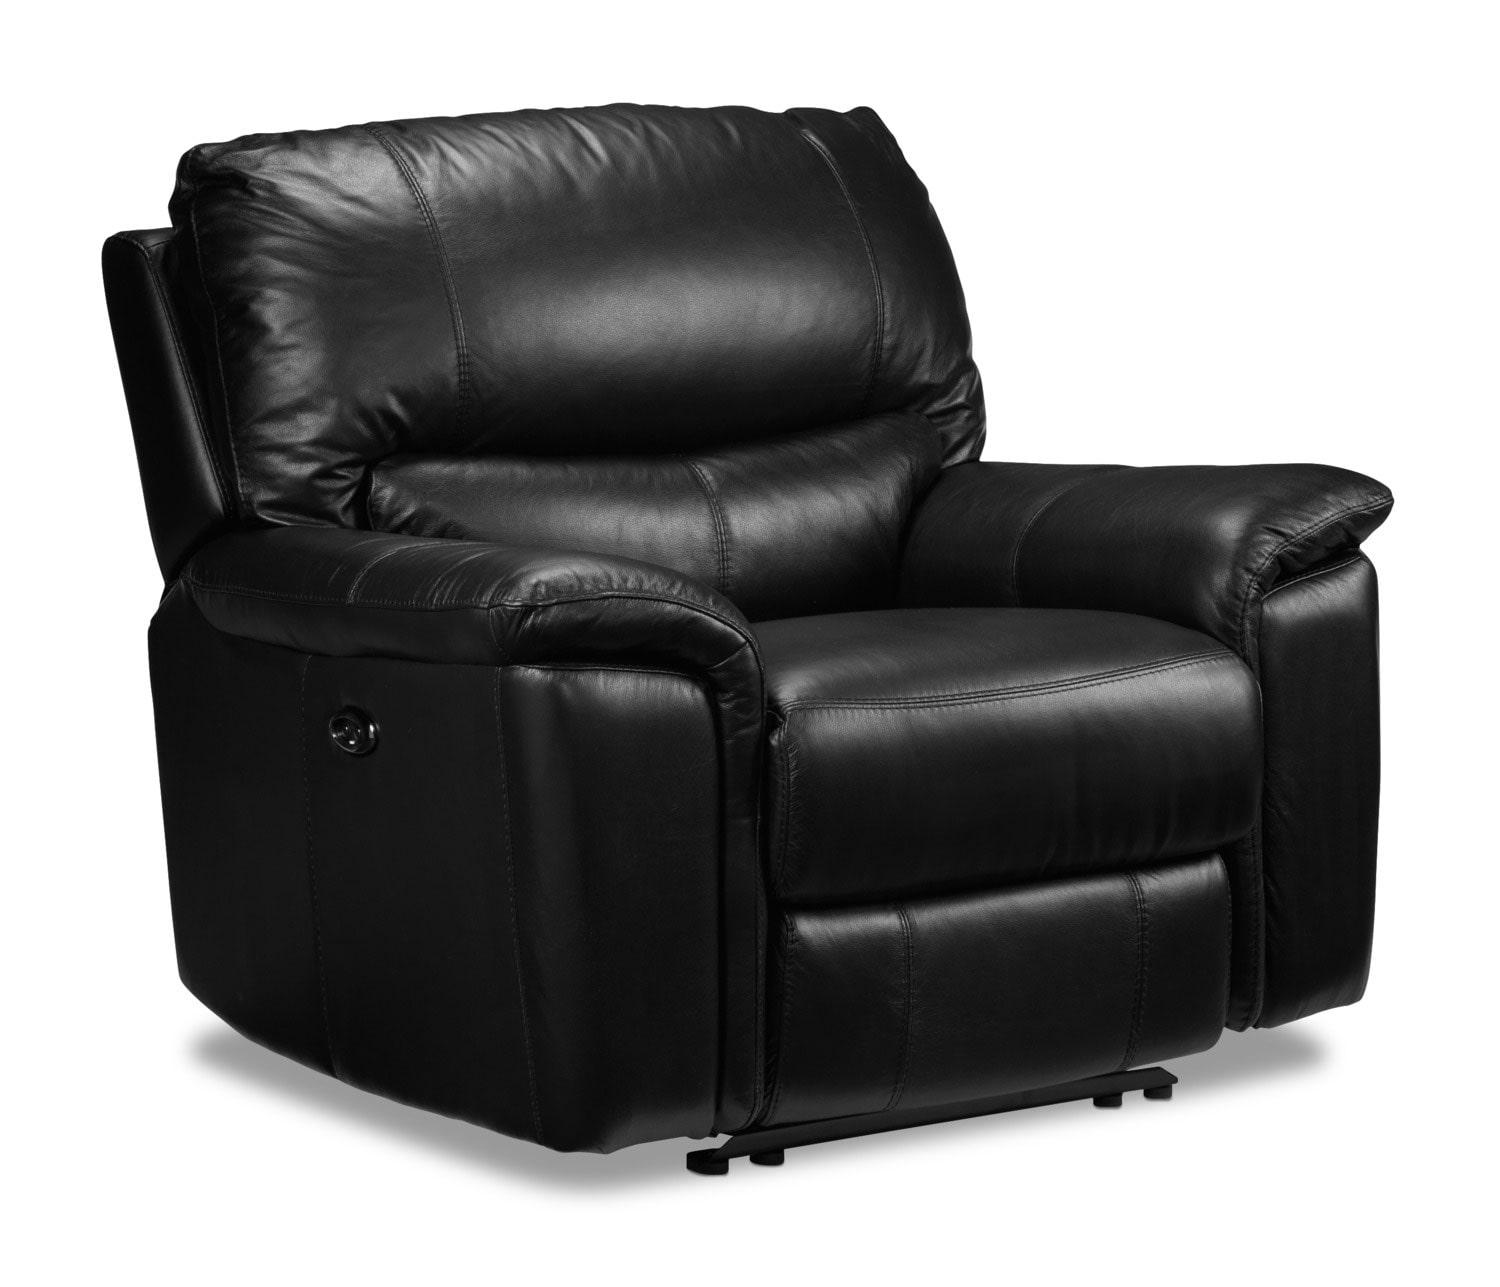 Living Room Furniture - Nolan Power Recliner - Black